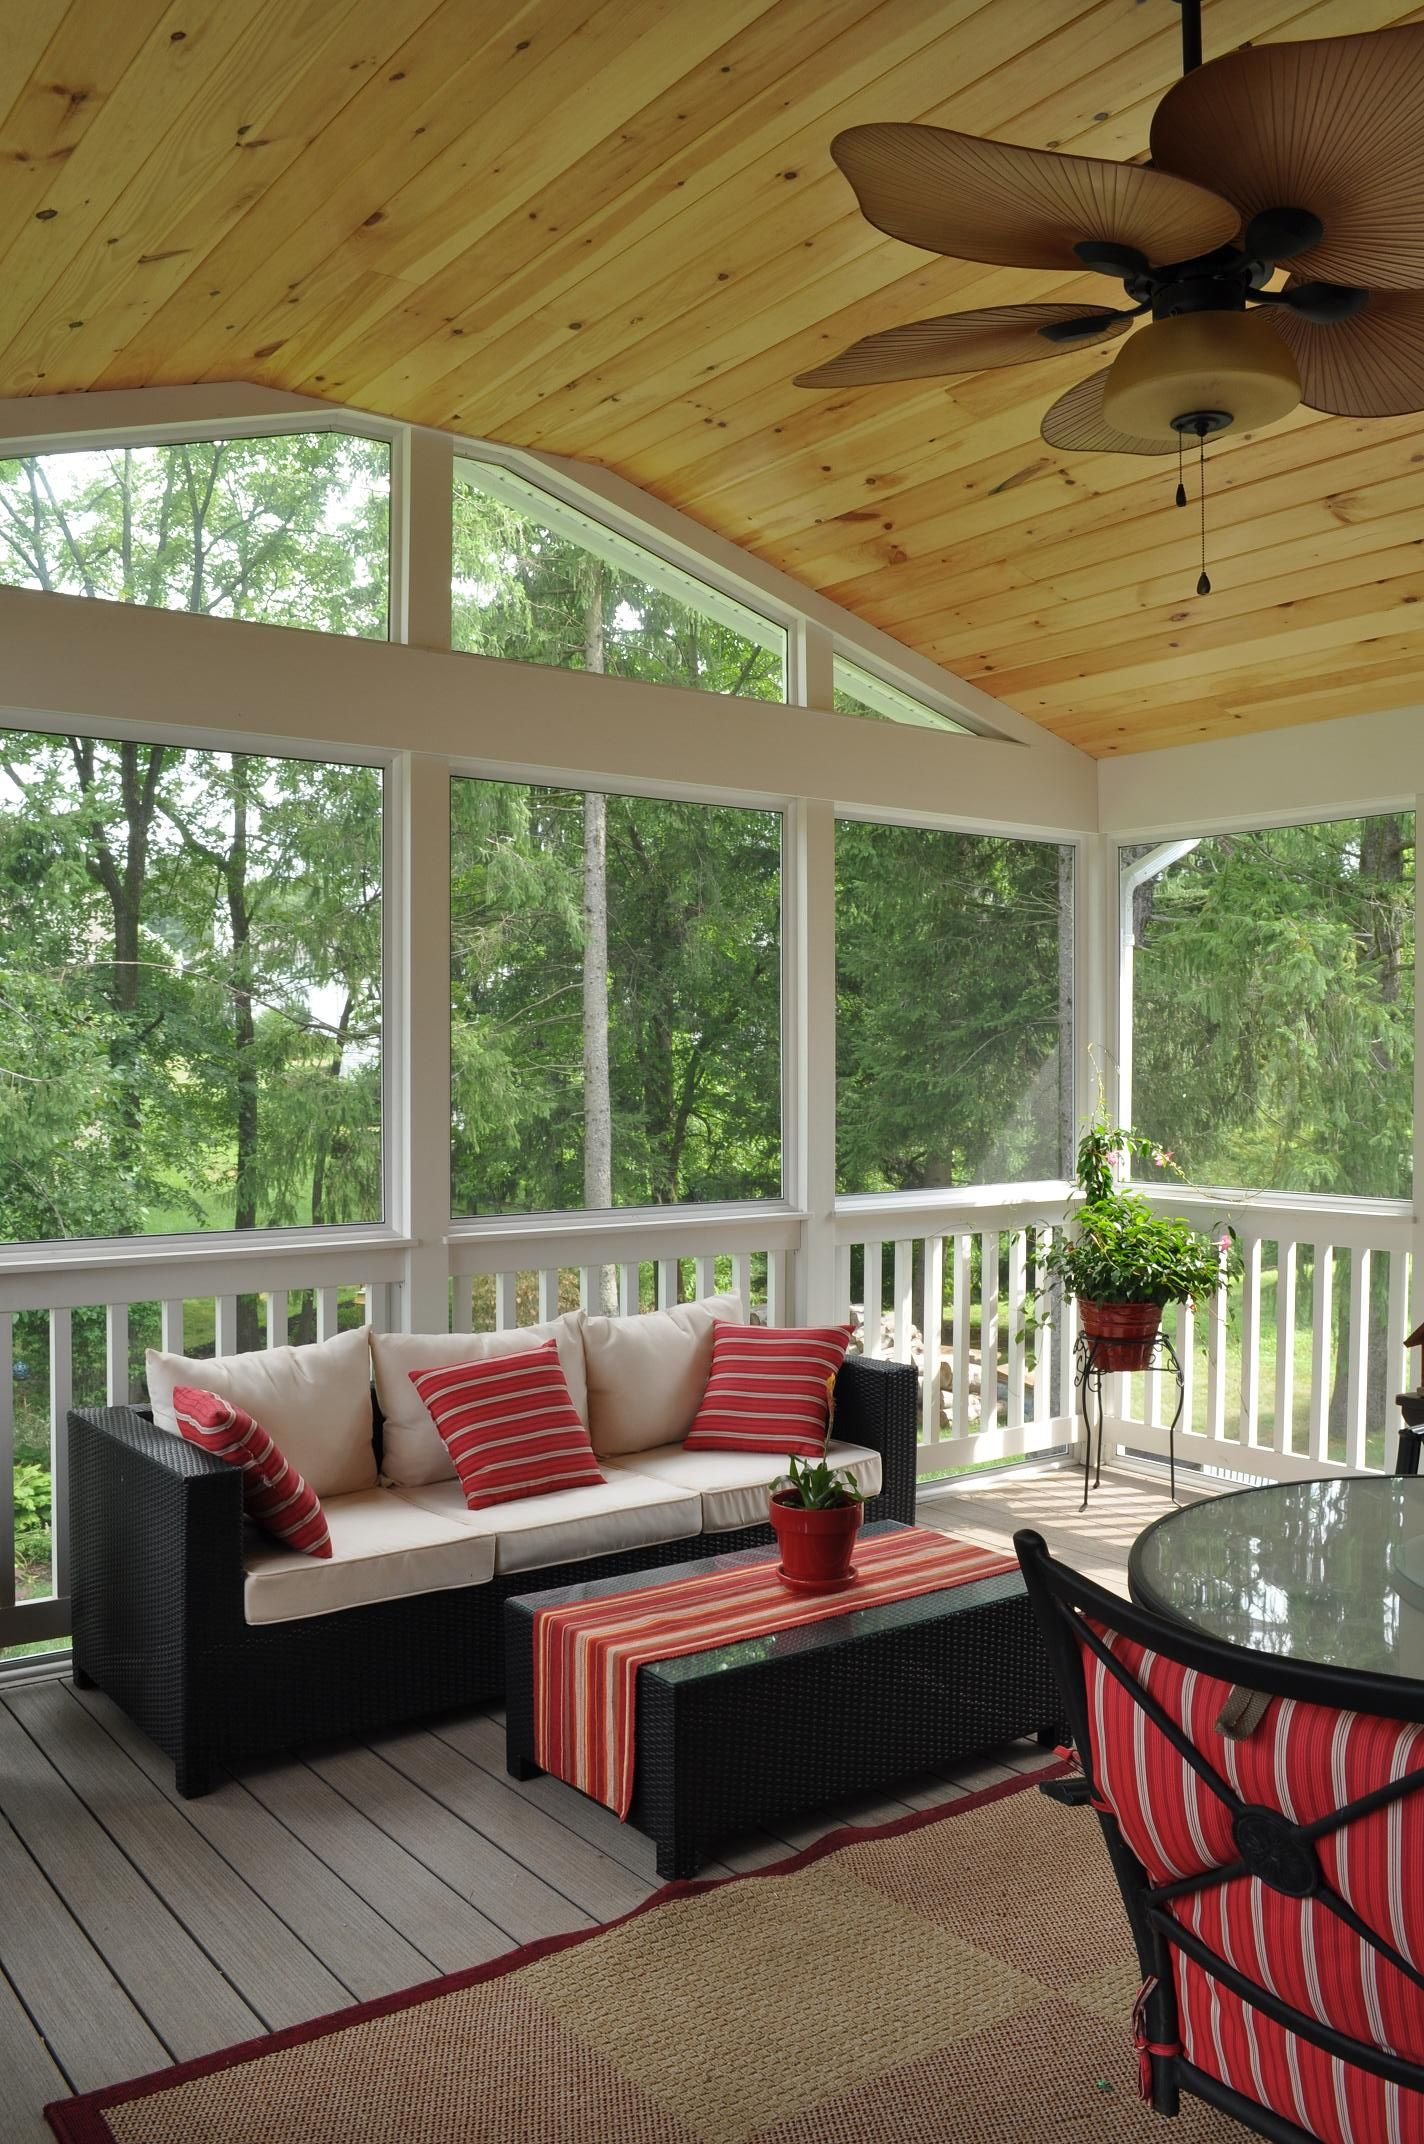 A Tongue Groove Knotty Pine Ceiling Adds A Natural Element To The Outdoor Space Tongue And Groove Ceiling Porch Interior Patio Room